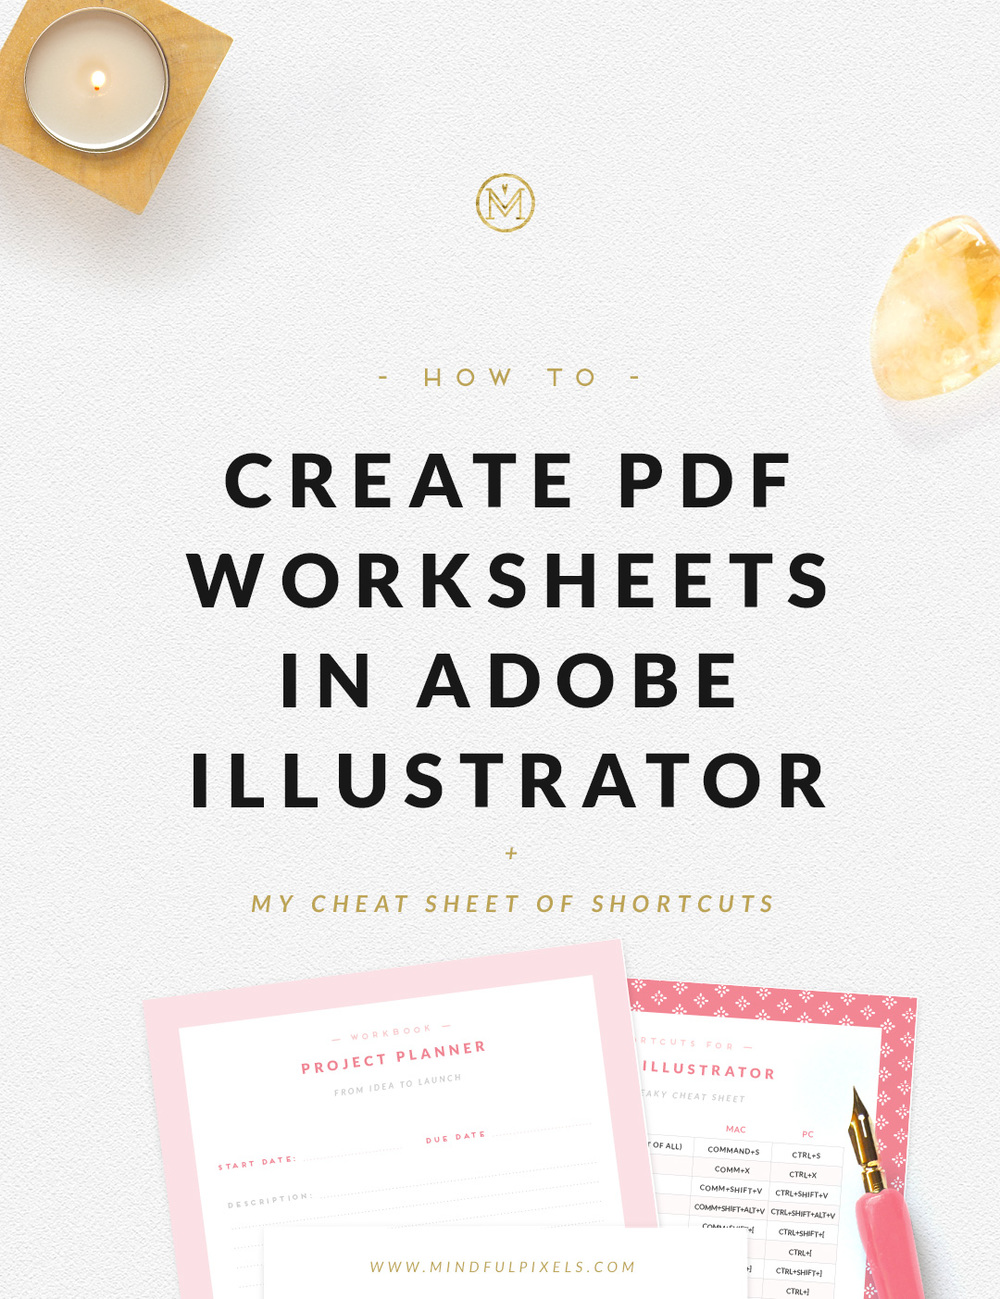 Create-PDF-Worksheets-with-Adobe-Illustrator-cover1.jpg